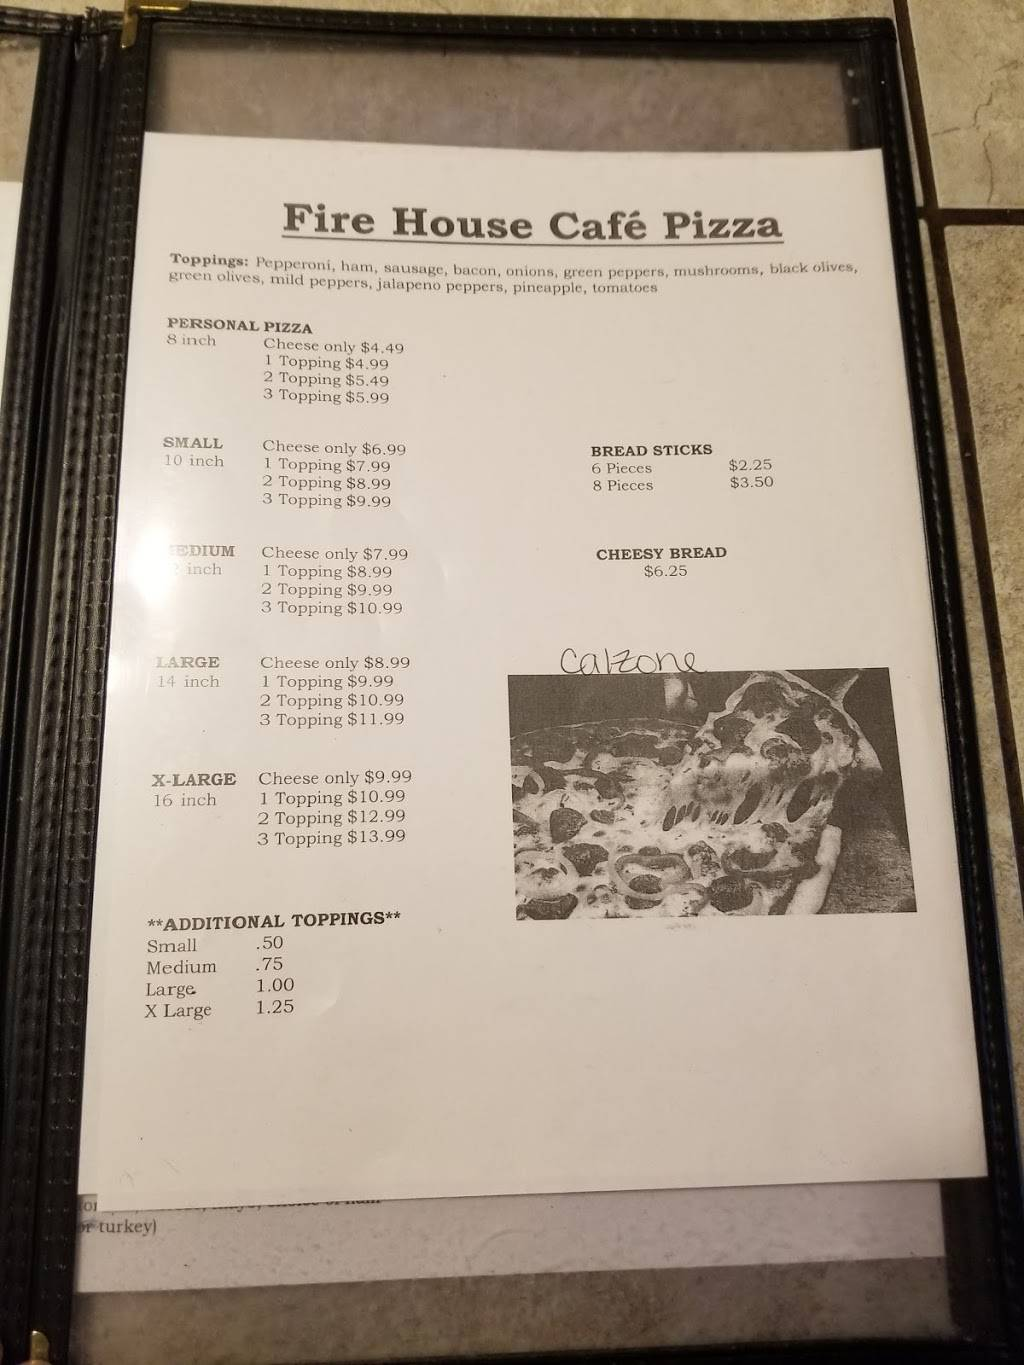 Firehouse Cafe | restaurant | 4084 Huron St, North Branch, MI 48461, USA | 8106882161 OR +1 810-688-2161